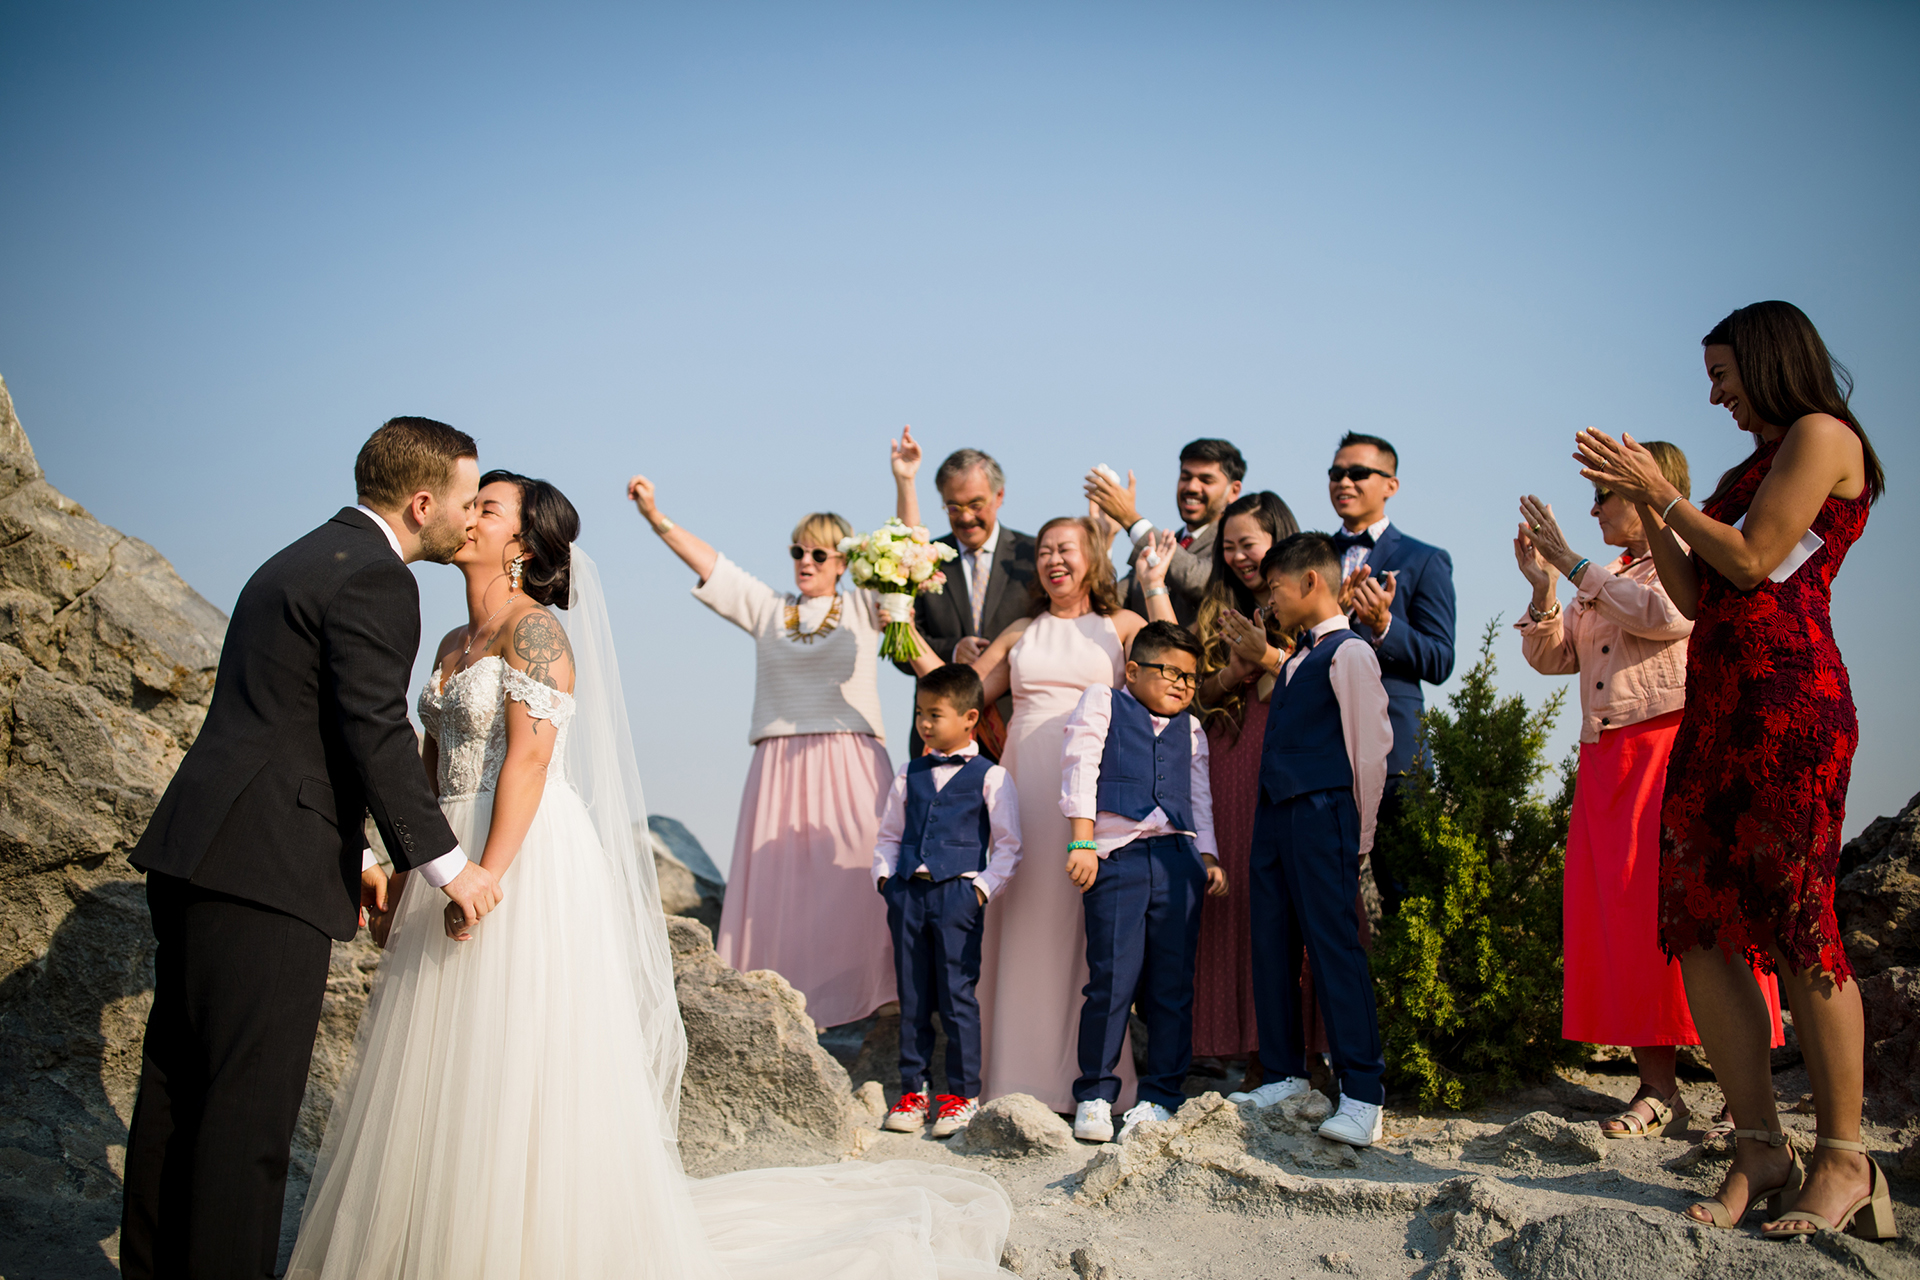 Mammoth Lake Outdoor Wedding Photo | The bride and groom sneak in a kiss as their family members and friends cheer